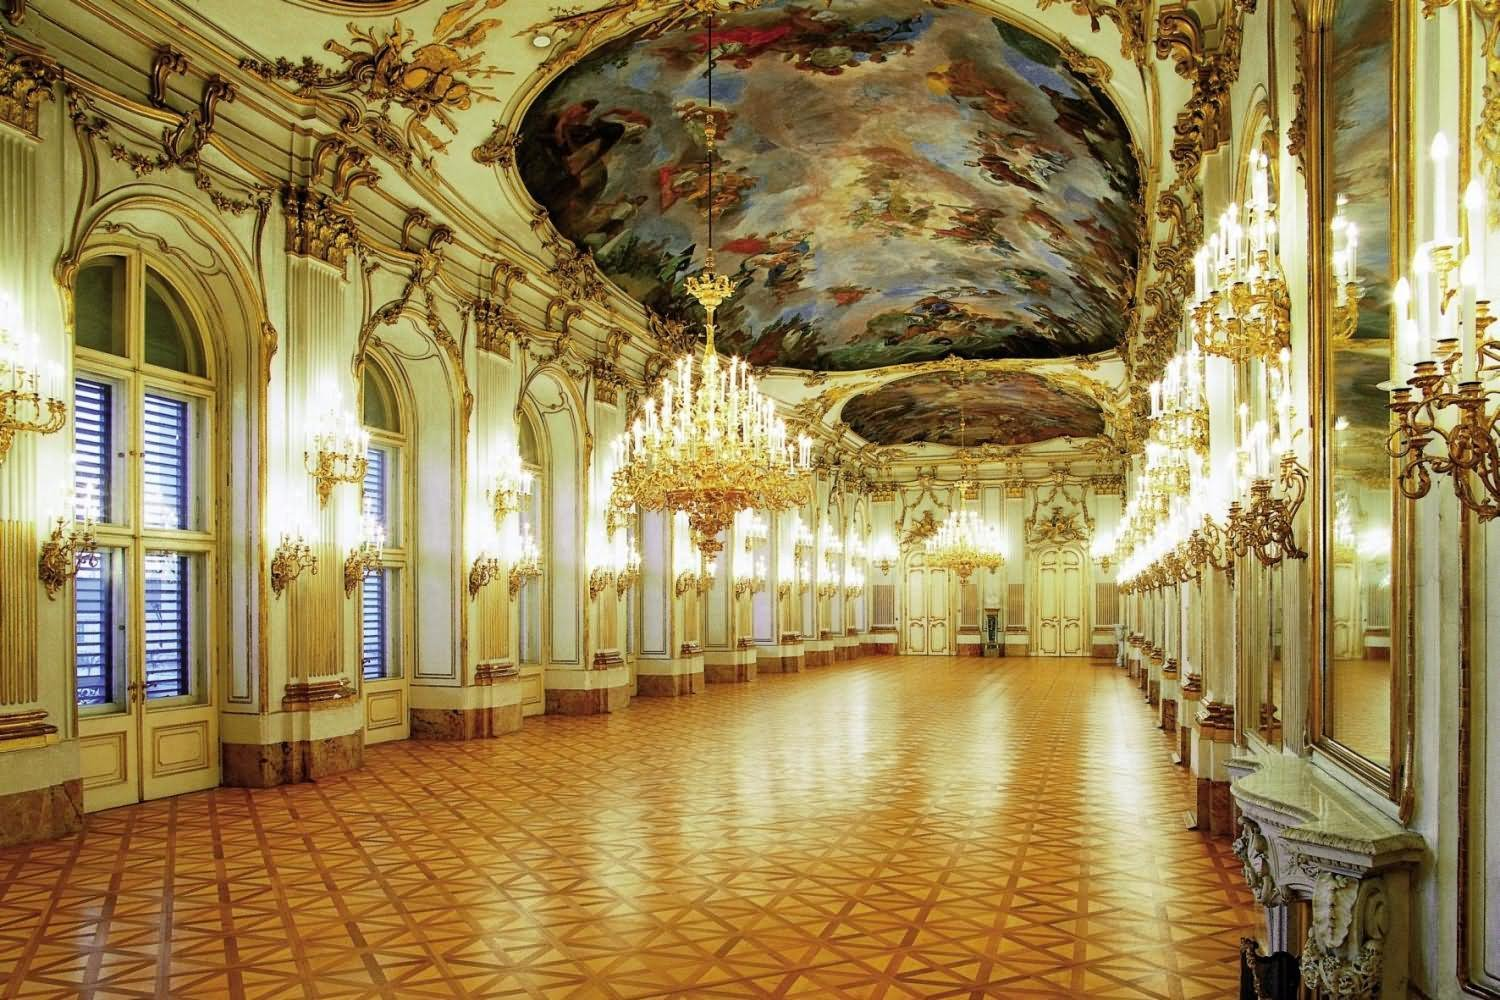 Amazing Ceiling Architecture Inside The Schonbrunn Palace